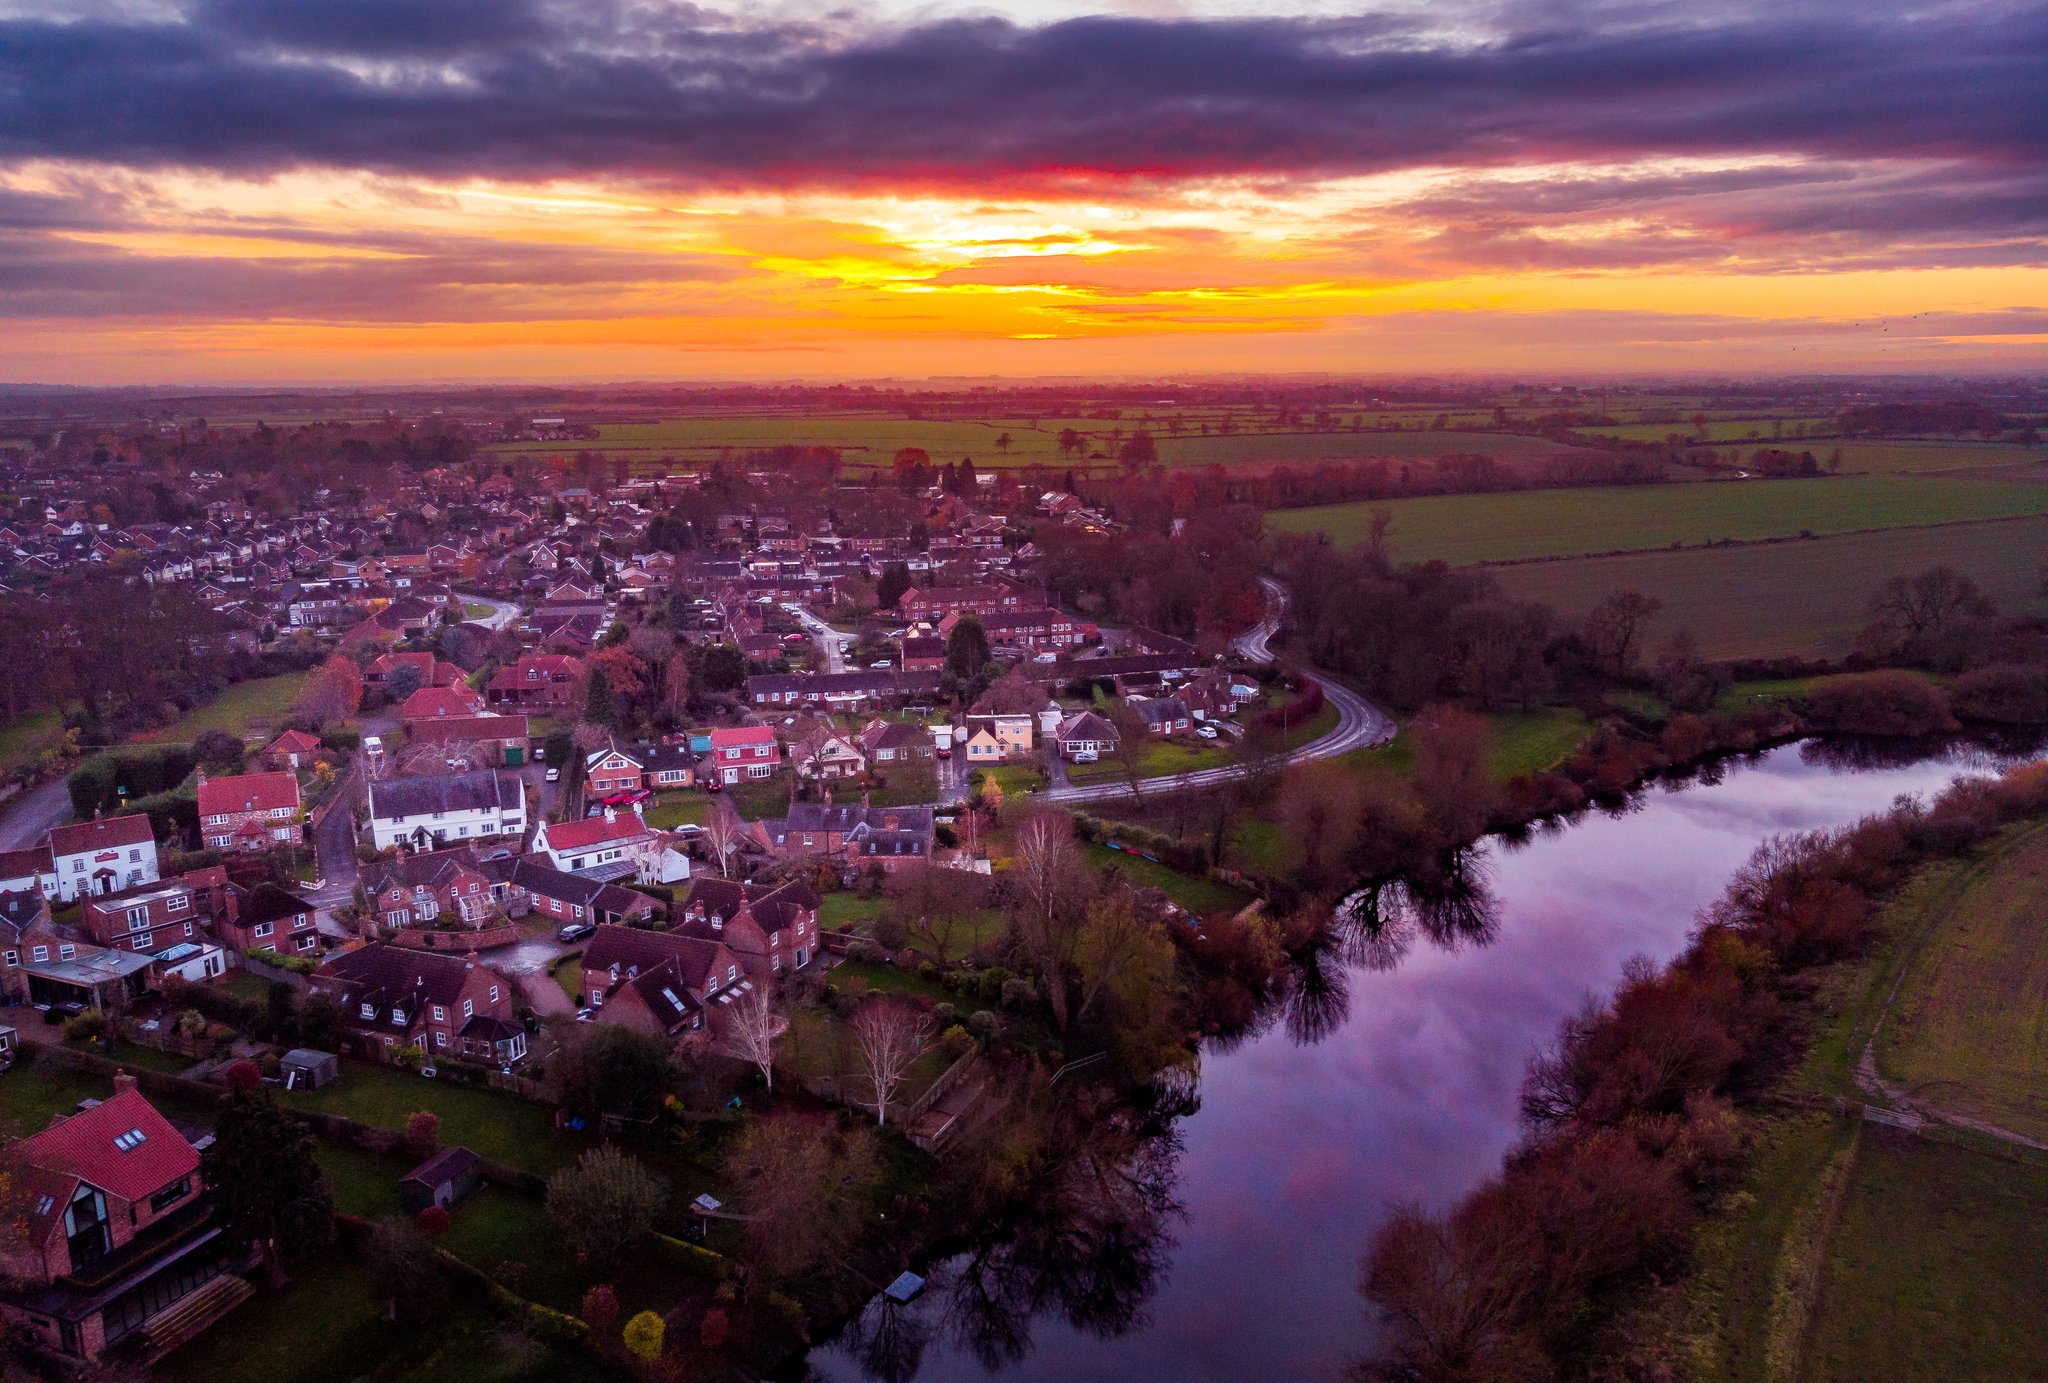 Hello from below .... And good afternoon from Nether Poppleton, York 😀 Had to get out for a stroll....  #MavicAir https://t.co/eyAshFNuEr